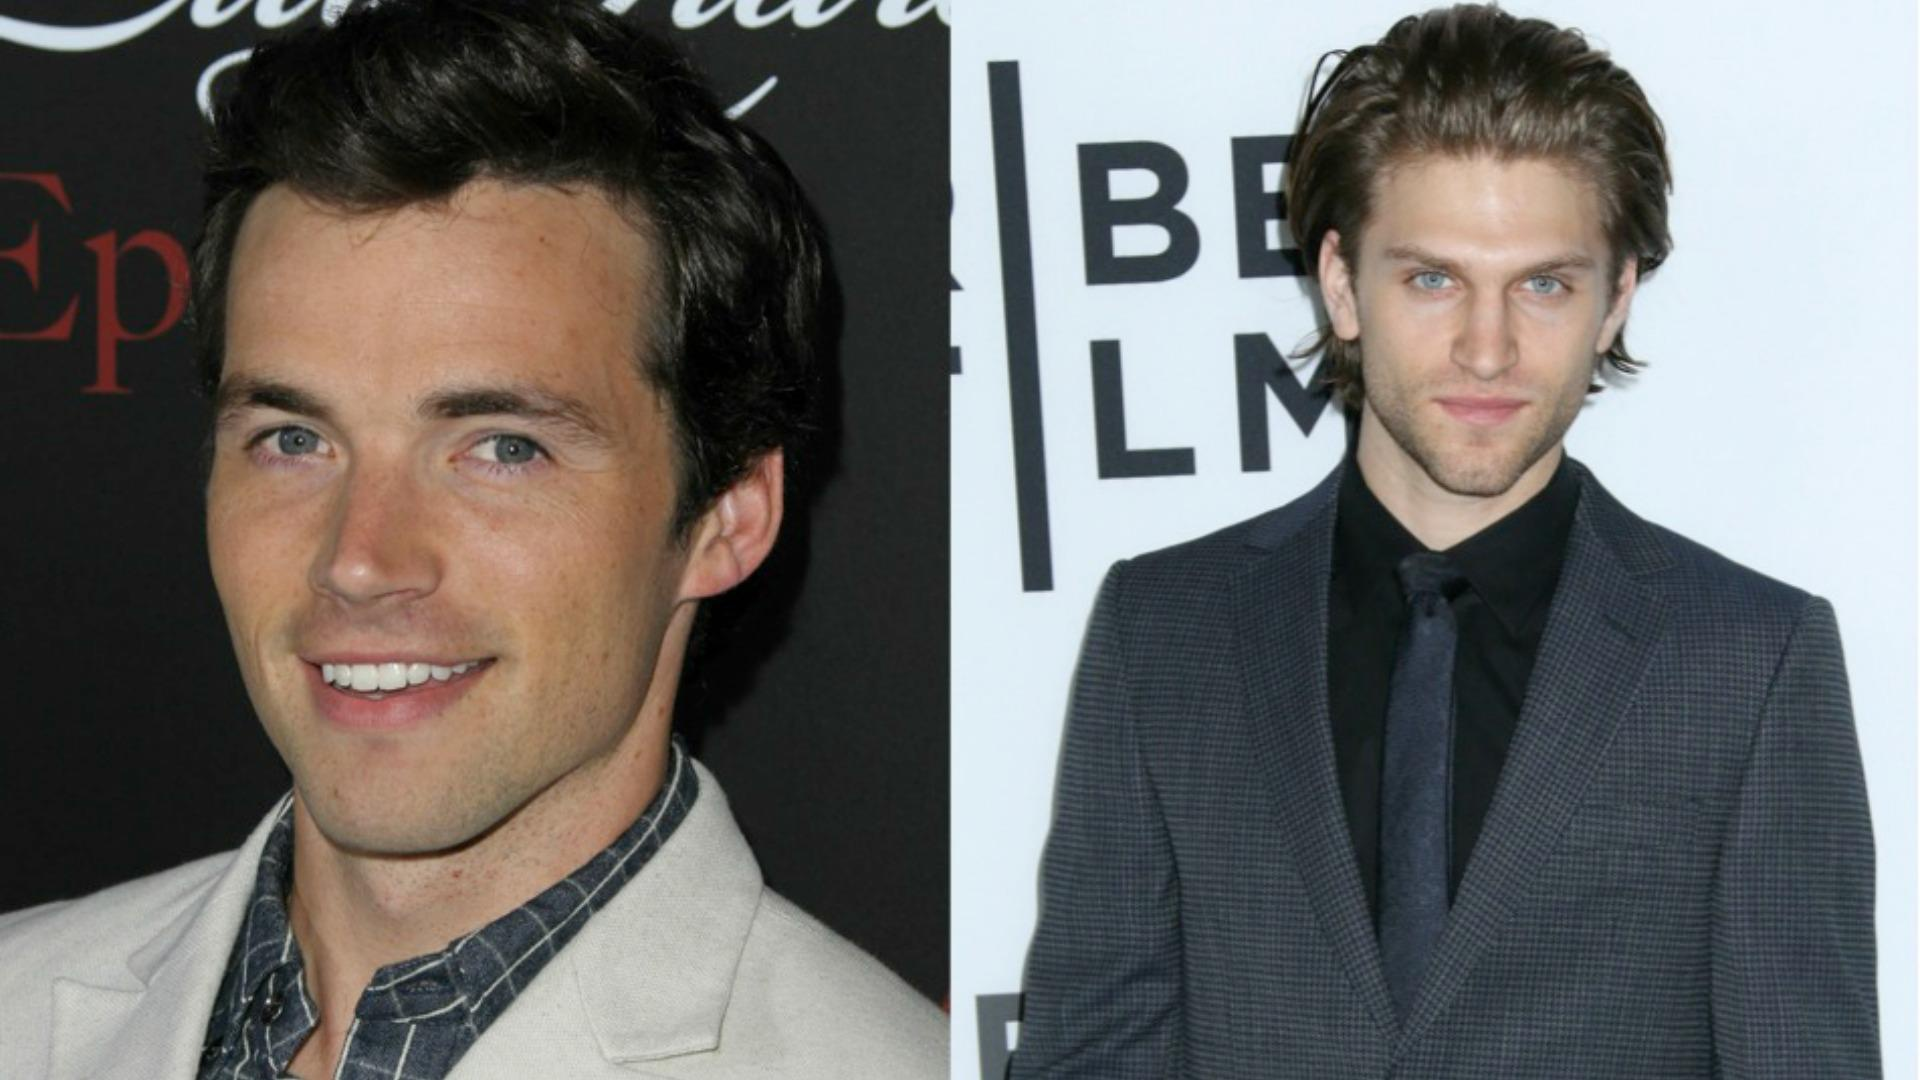 Who's hotter: Keegan Allen vs. Ian Harding